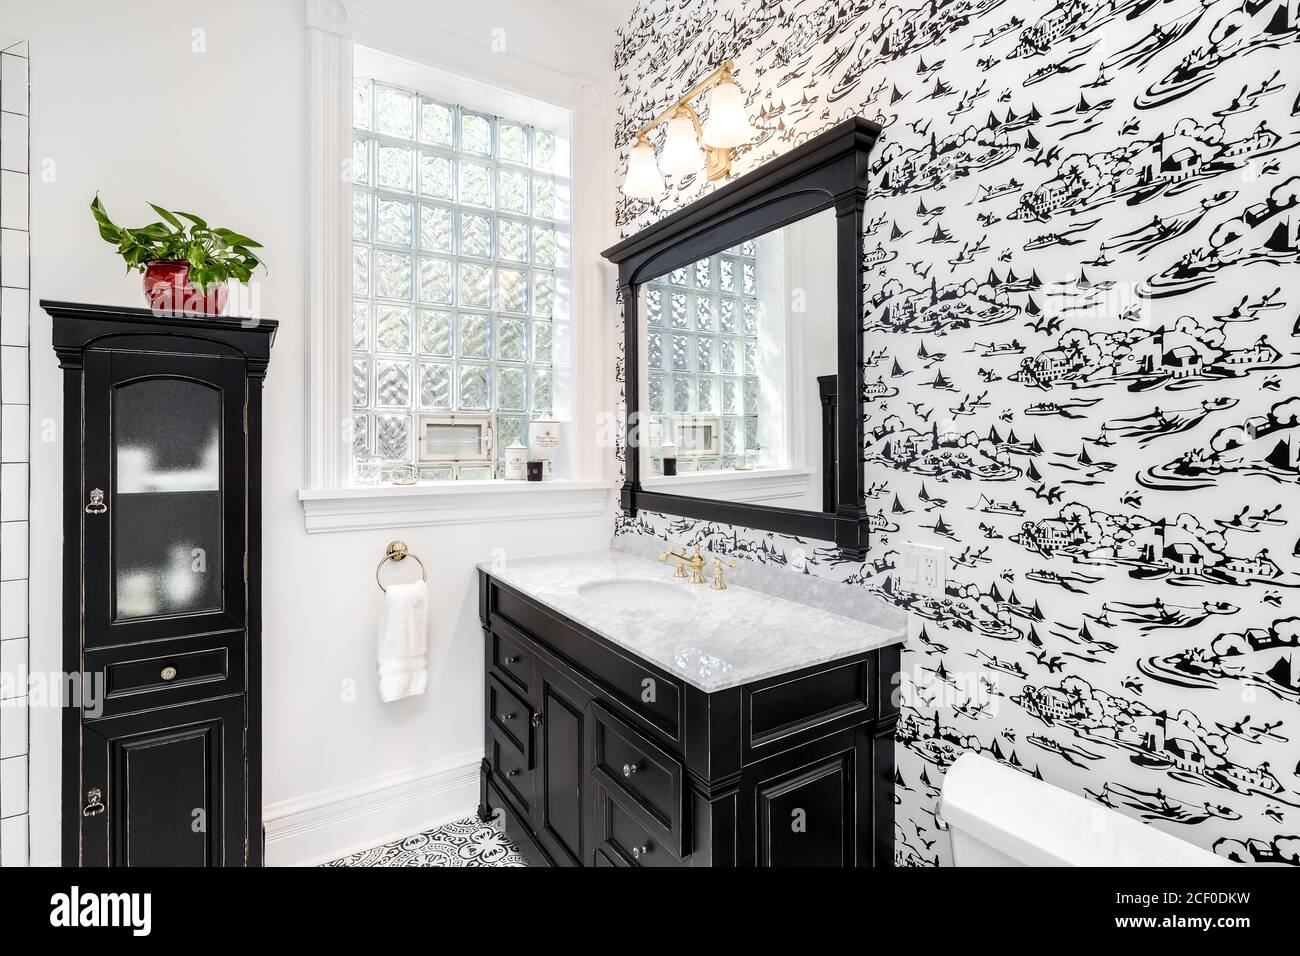 https www alamy com a renovated black and white bathroom with wallpaper black vanity decorative tiles on the floor and subway tiles in the shower image370648317 html